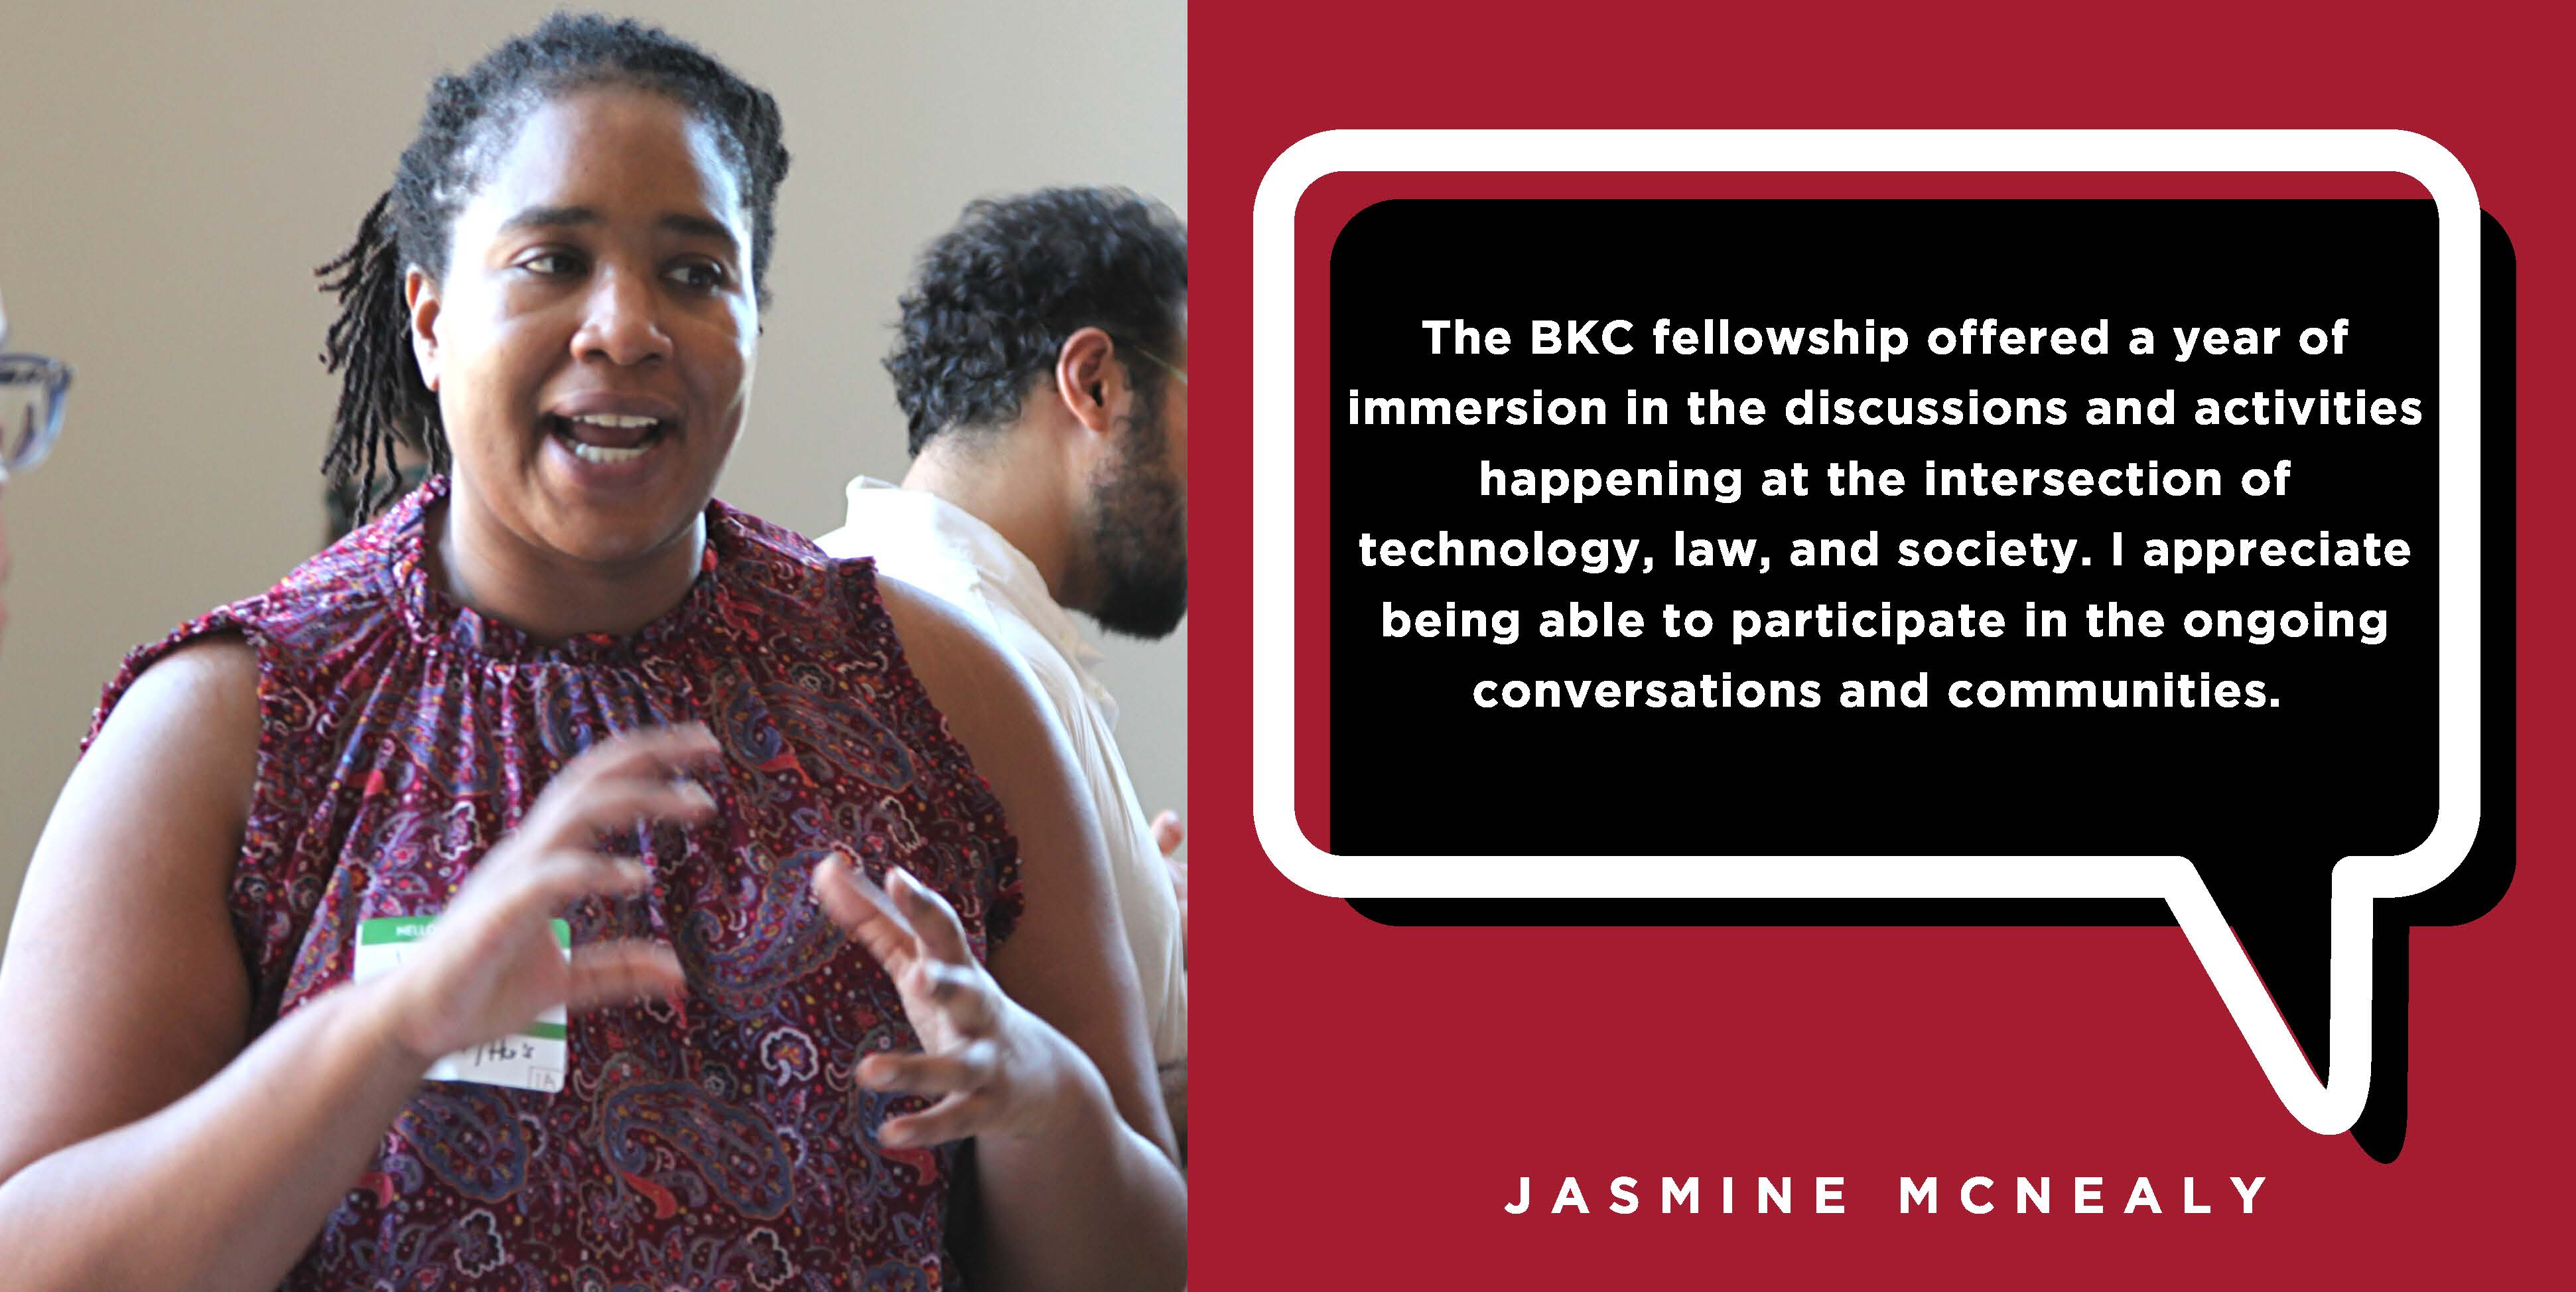 The BKC fellowship offered a year of immersion in the discussions and activities happening at the intersection of technology, law, and society. I appreciate being able to participate in the ongoing conversations and communities. - Jasmine McNealy